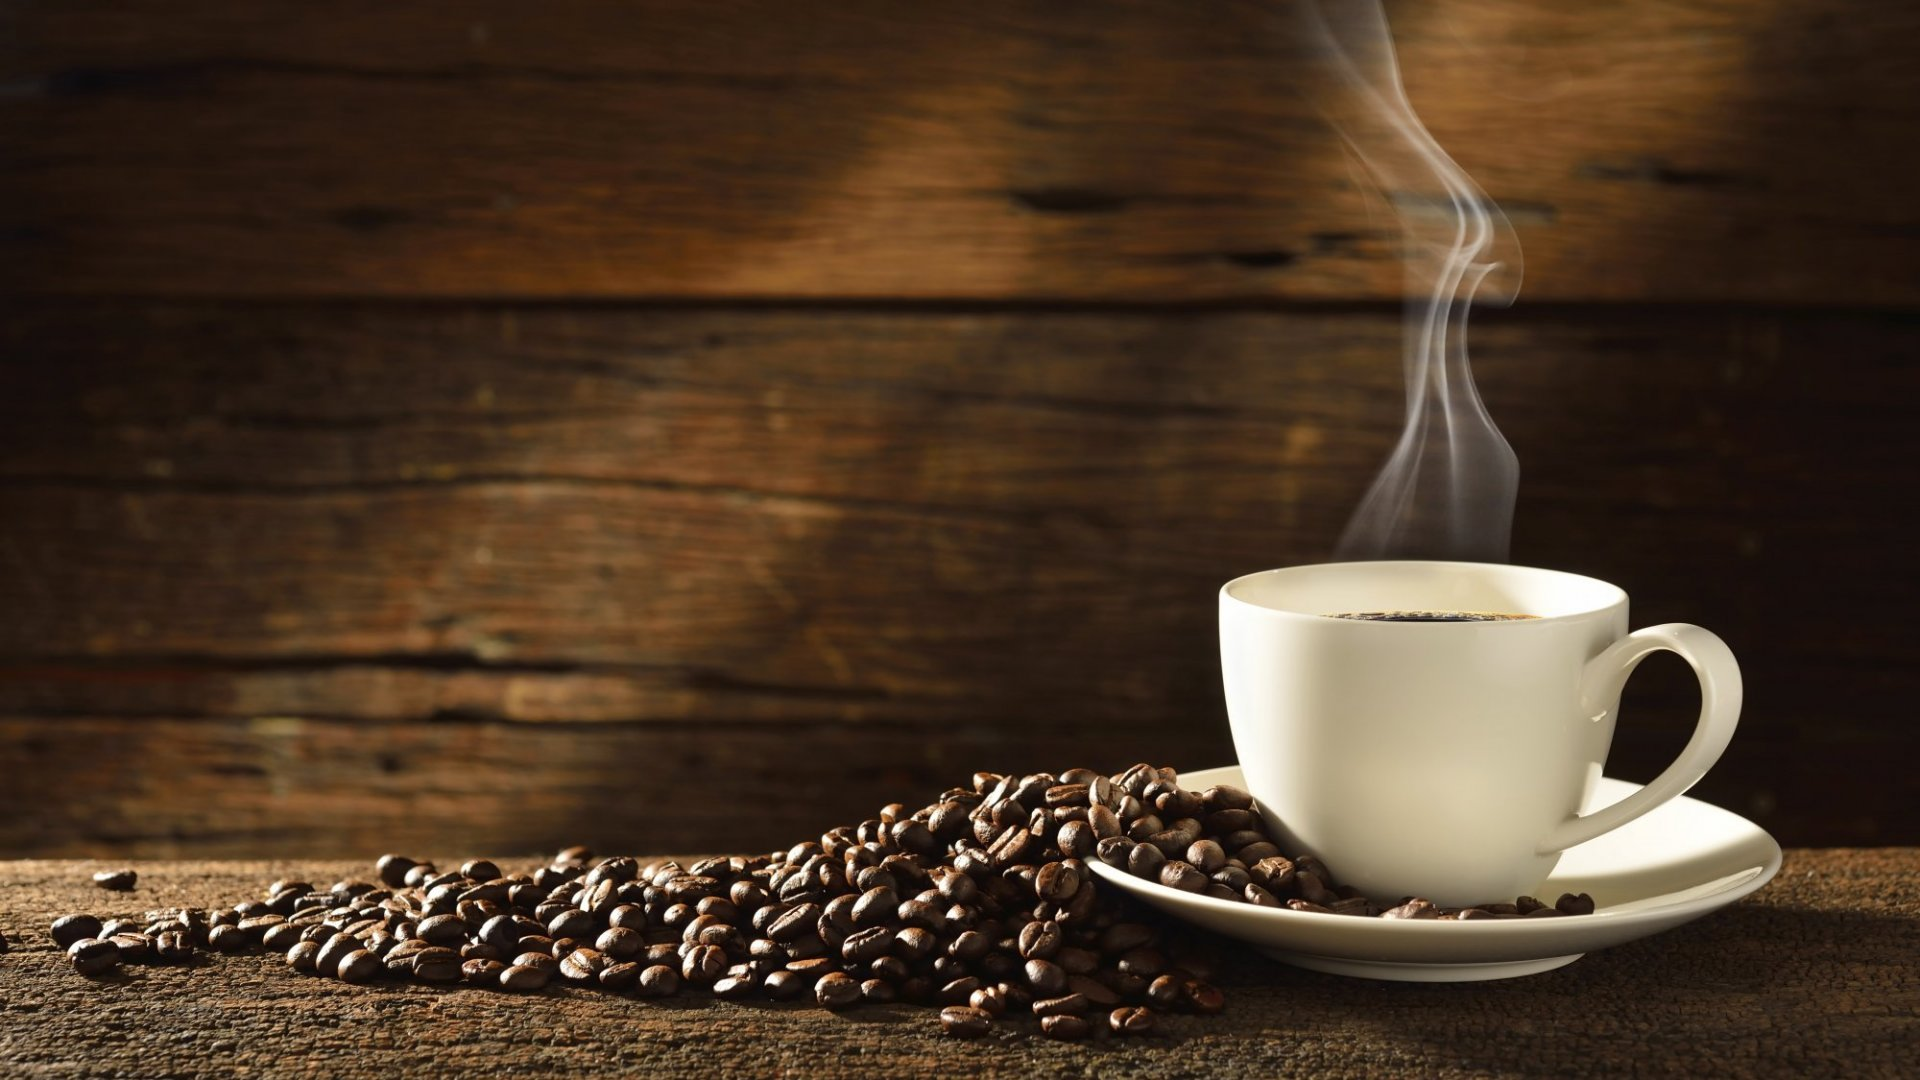 The 5-Minute Sales Trick You Can Do While Brewing Your Morning Coffee